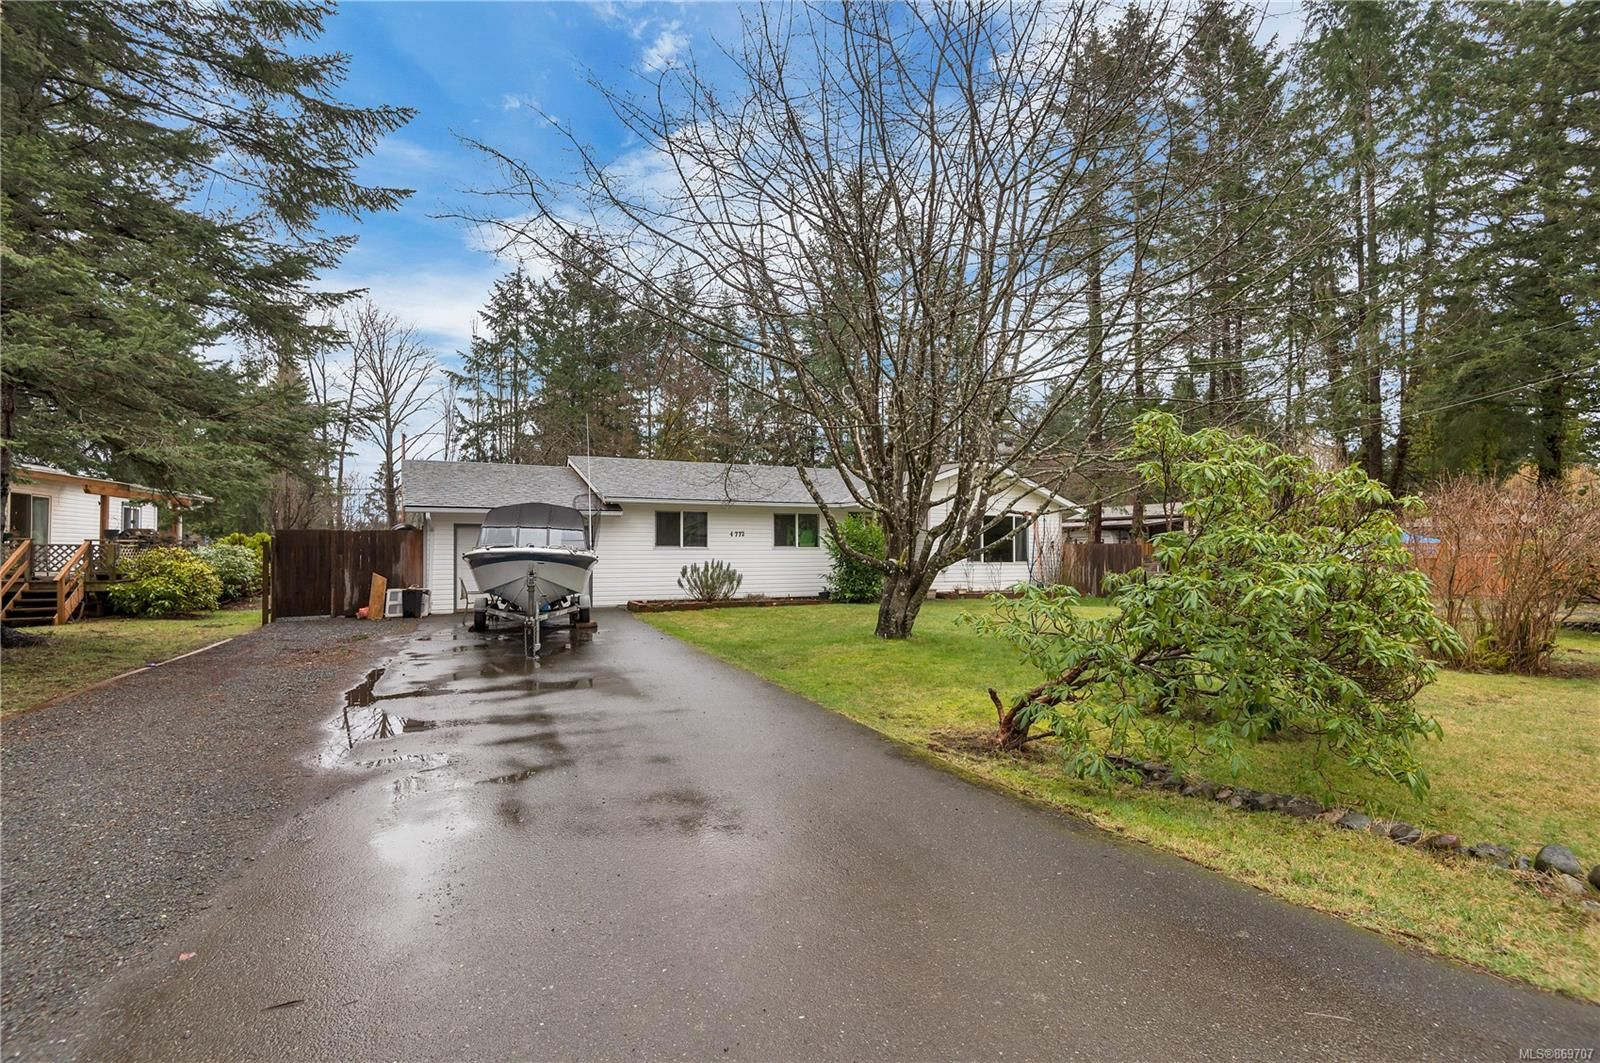 Main Photo: 4772 Upland Rd in : CR Campbell River South House for sale (Campbell River)  : MLS®# 869707